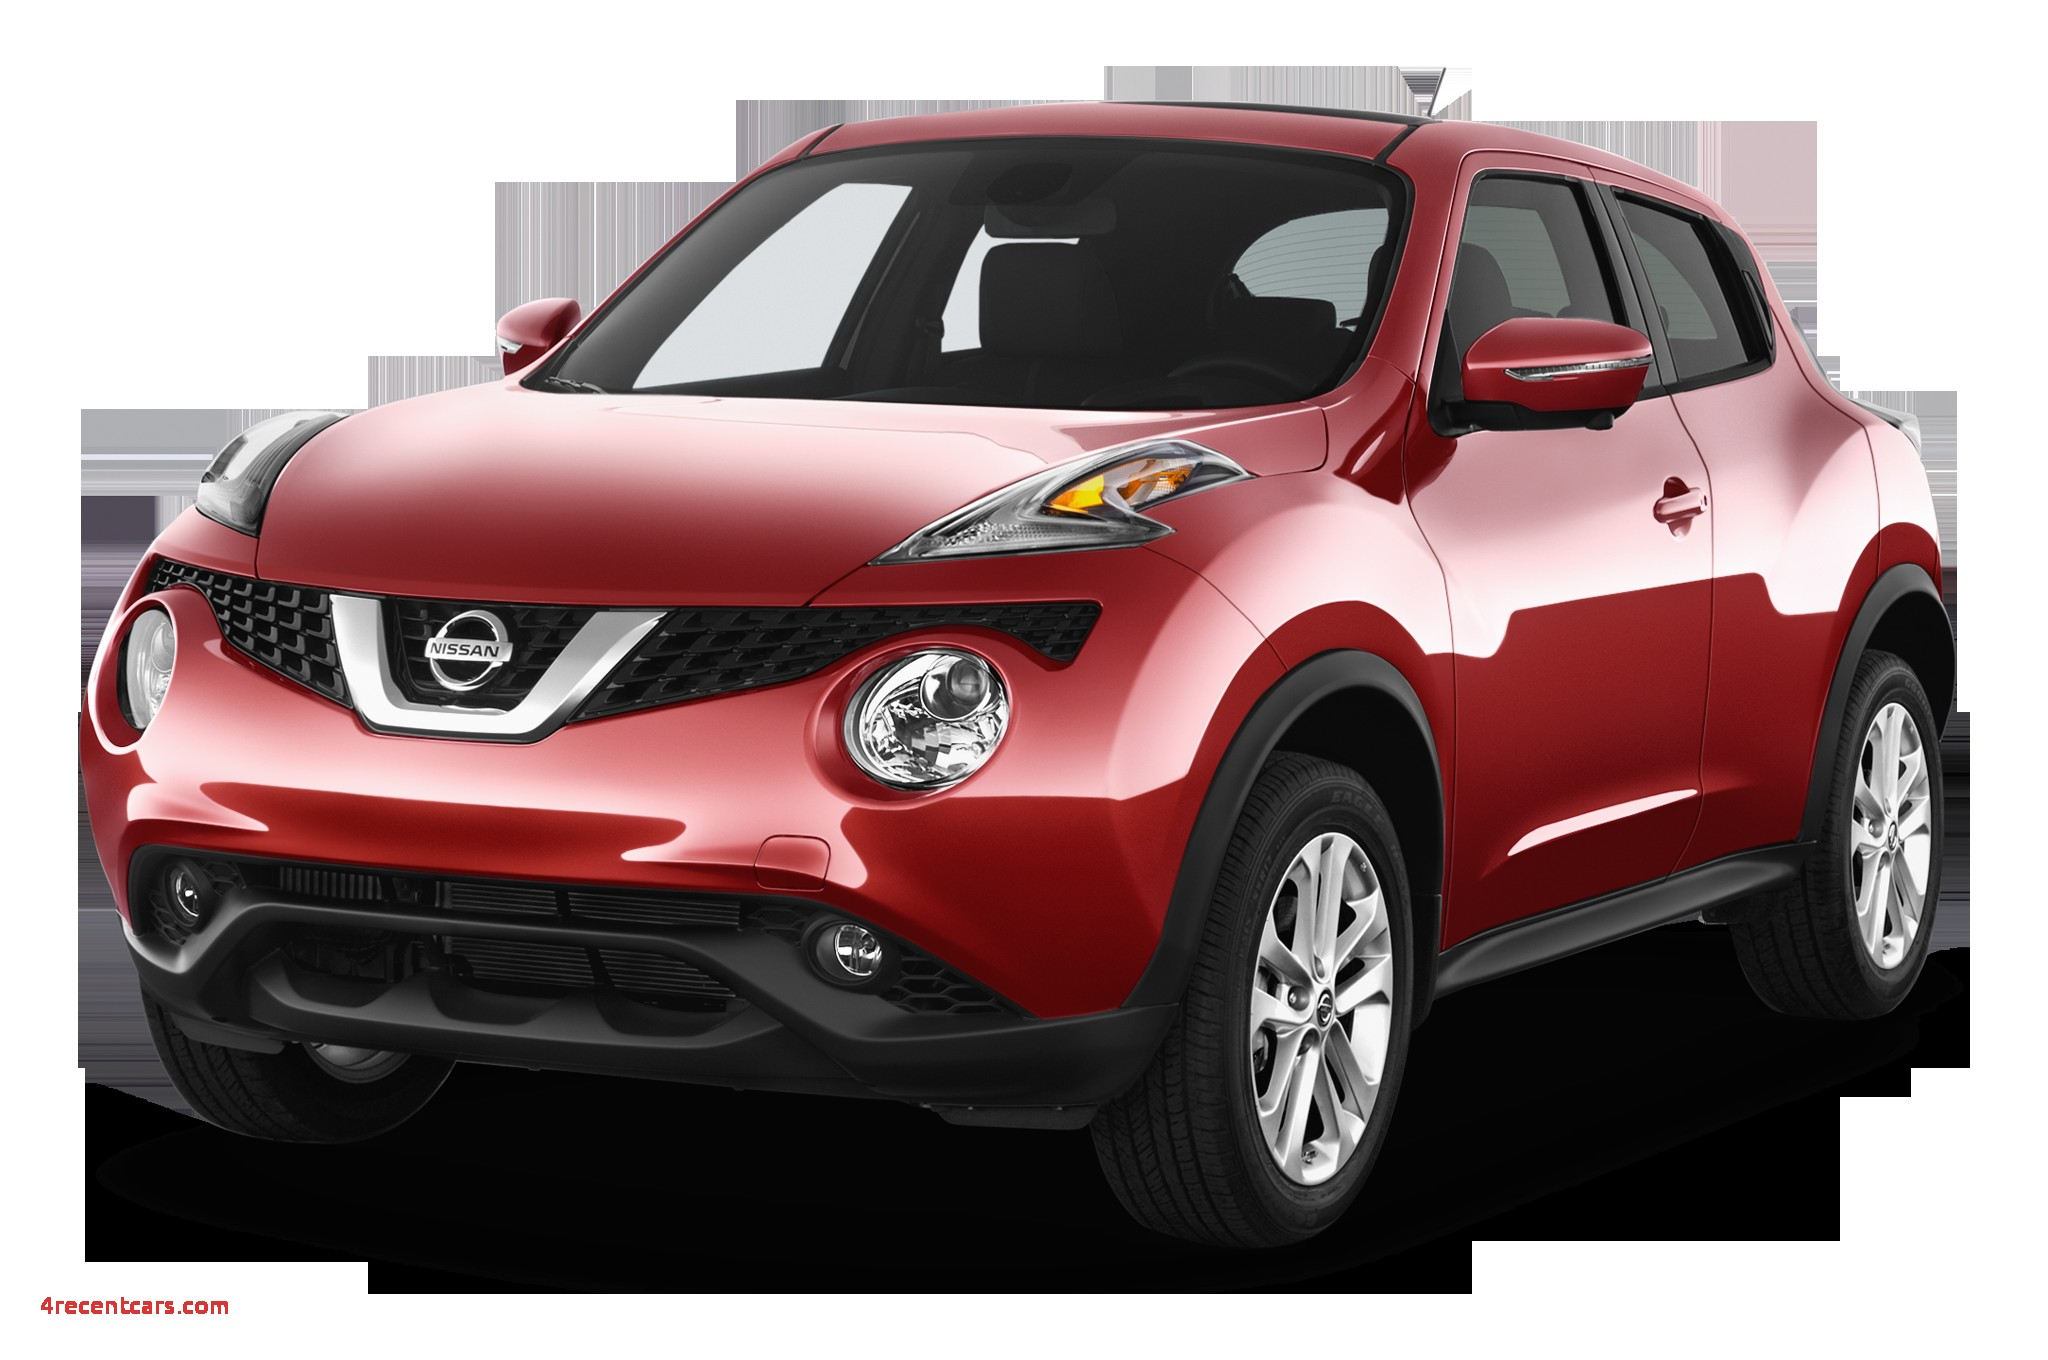 Nissan New Car Best Of Nissan Juke Png C-Nissan New Car Best Of Nissan Juke Png Clipart Download Free Images In Png-16